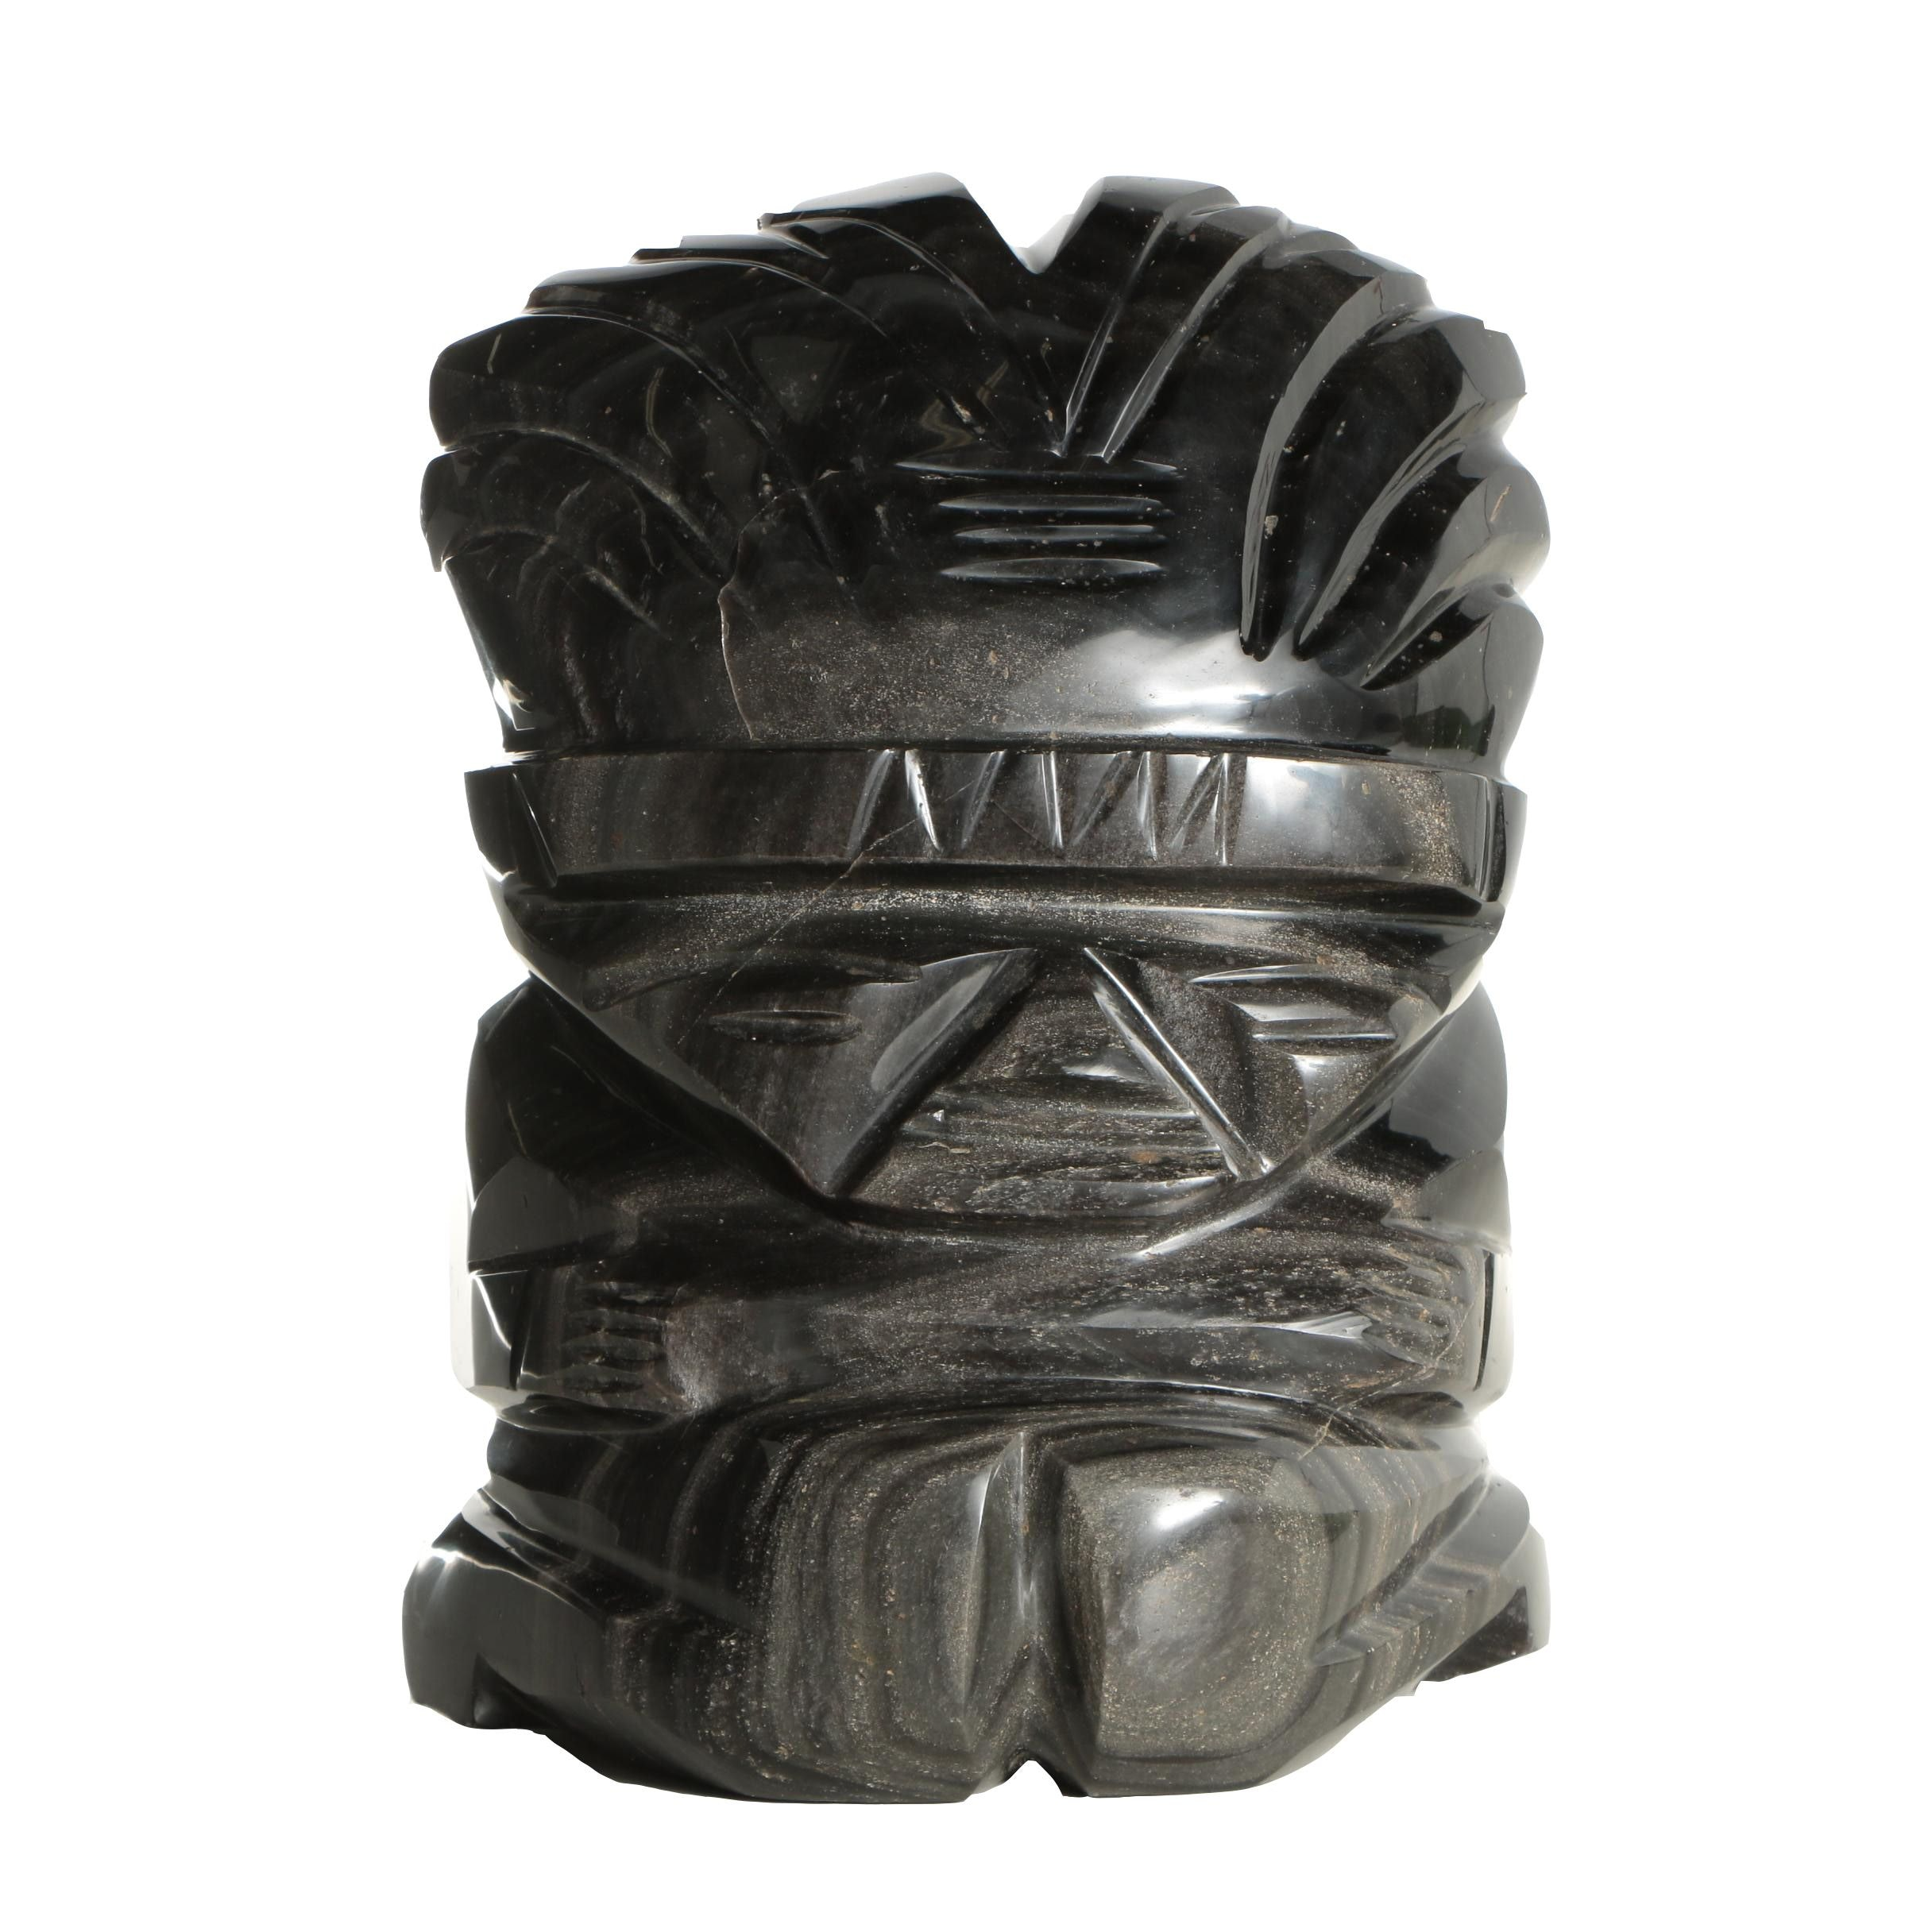 Carved Chatoyant Obsidian Sculpture